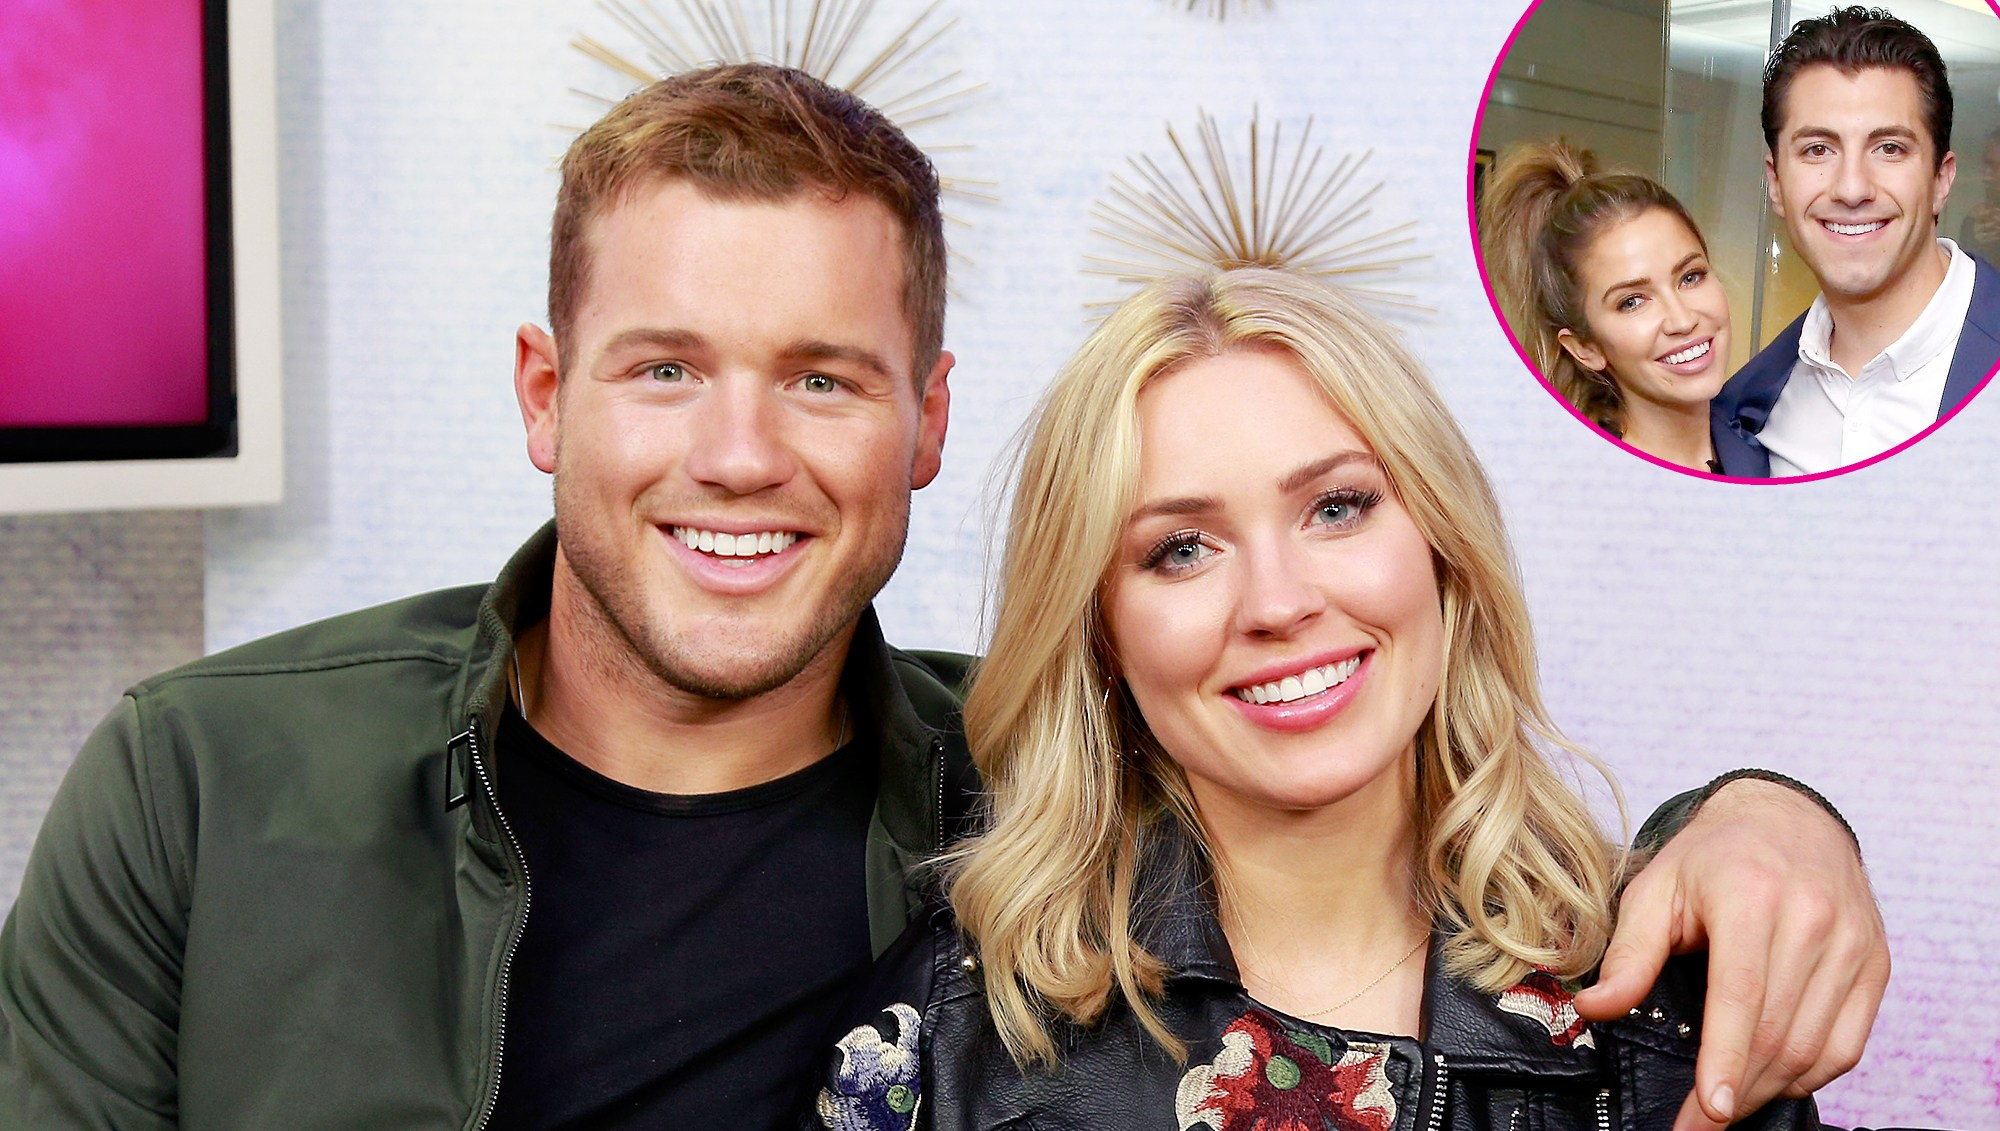 Colton-Underwood-and-Cassie-Randolph-double-date-with-Kaitlyn-Bristowe-and-Jason-Tartick